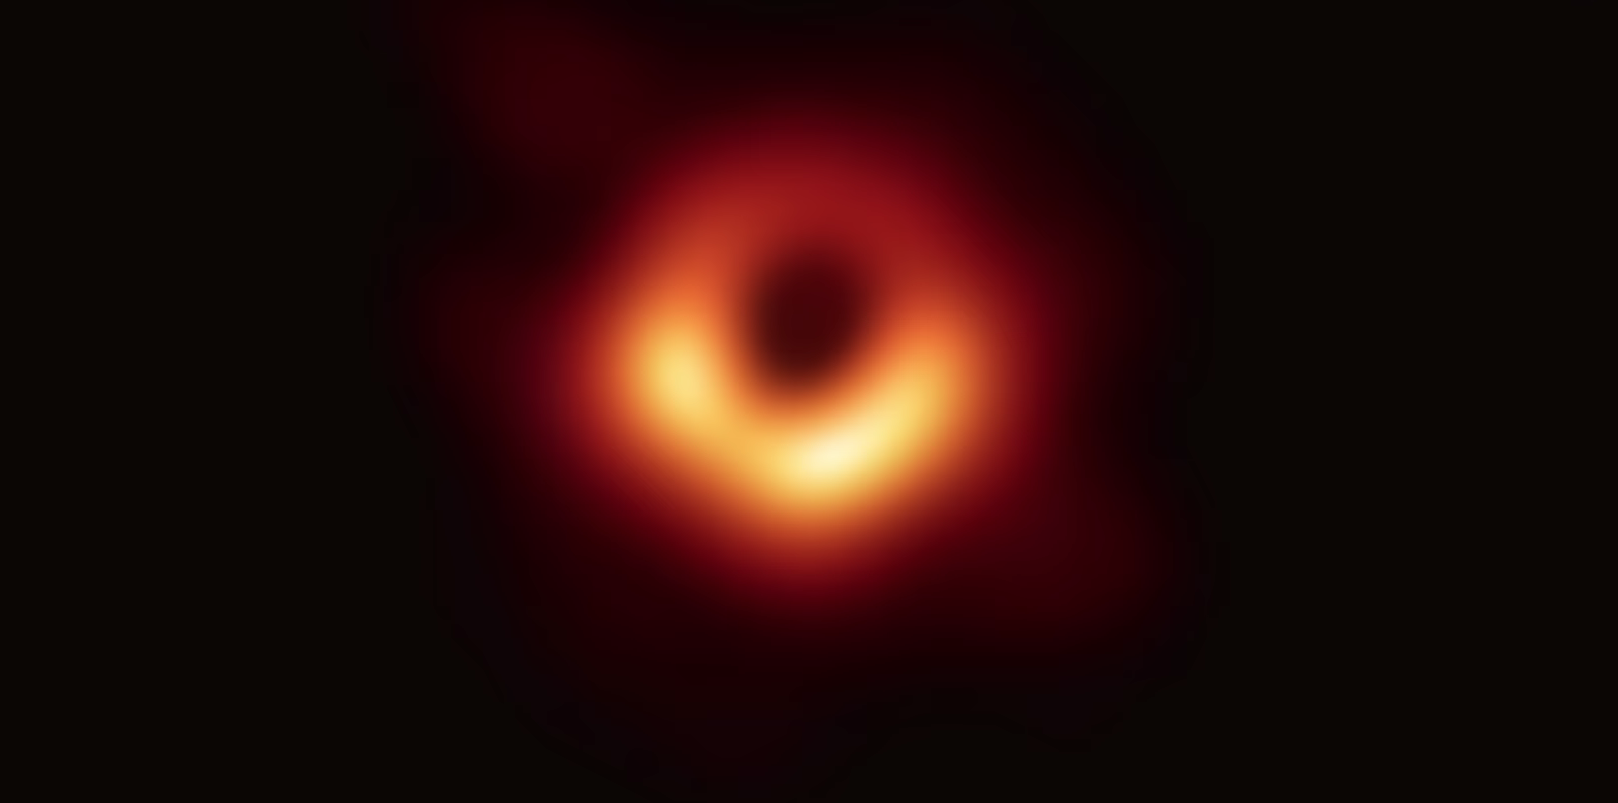 Why This Photo of A Black Hole Is Such A Big Deal